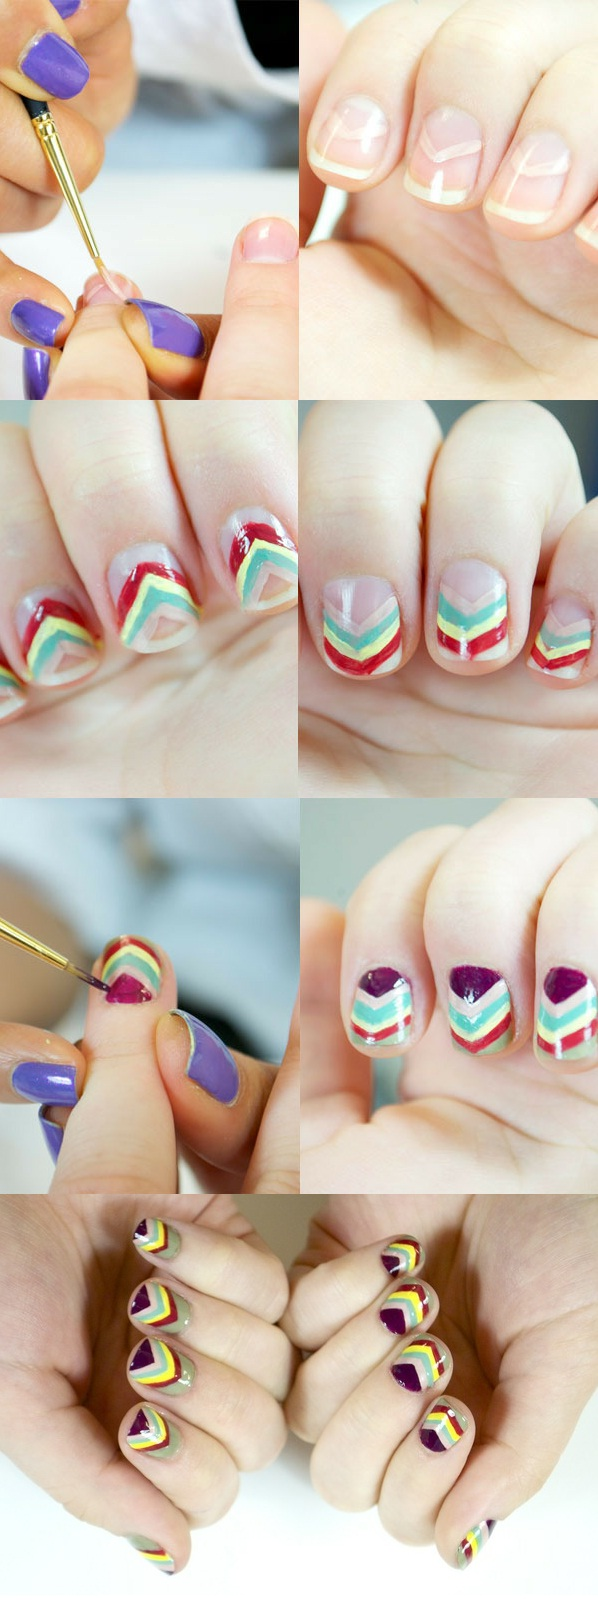 How to do a Missoni-inspired Manicure &quot;Nails Art Tutorial&quot;